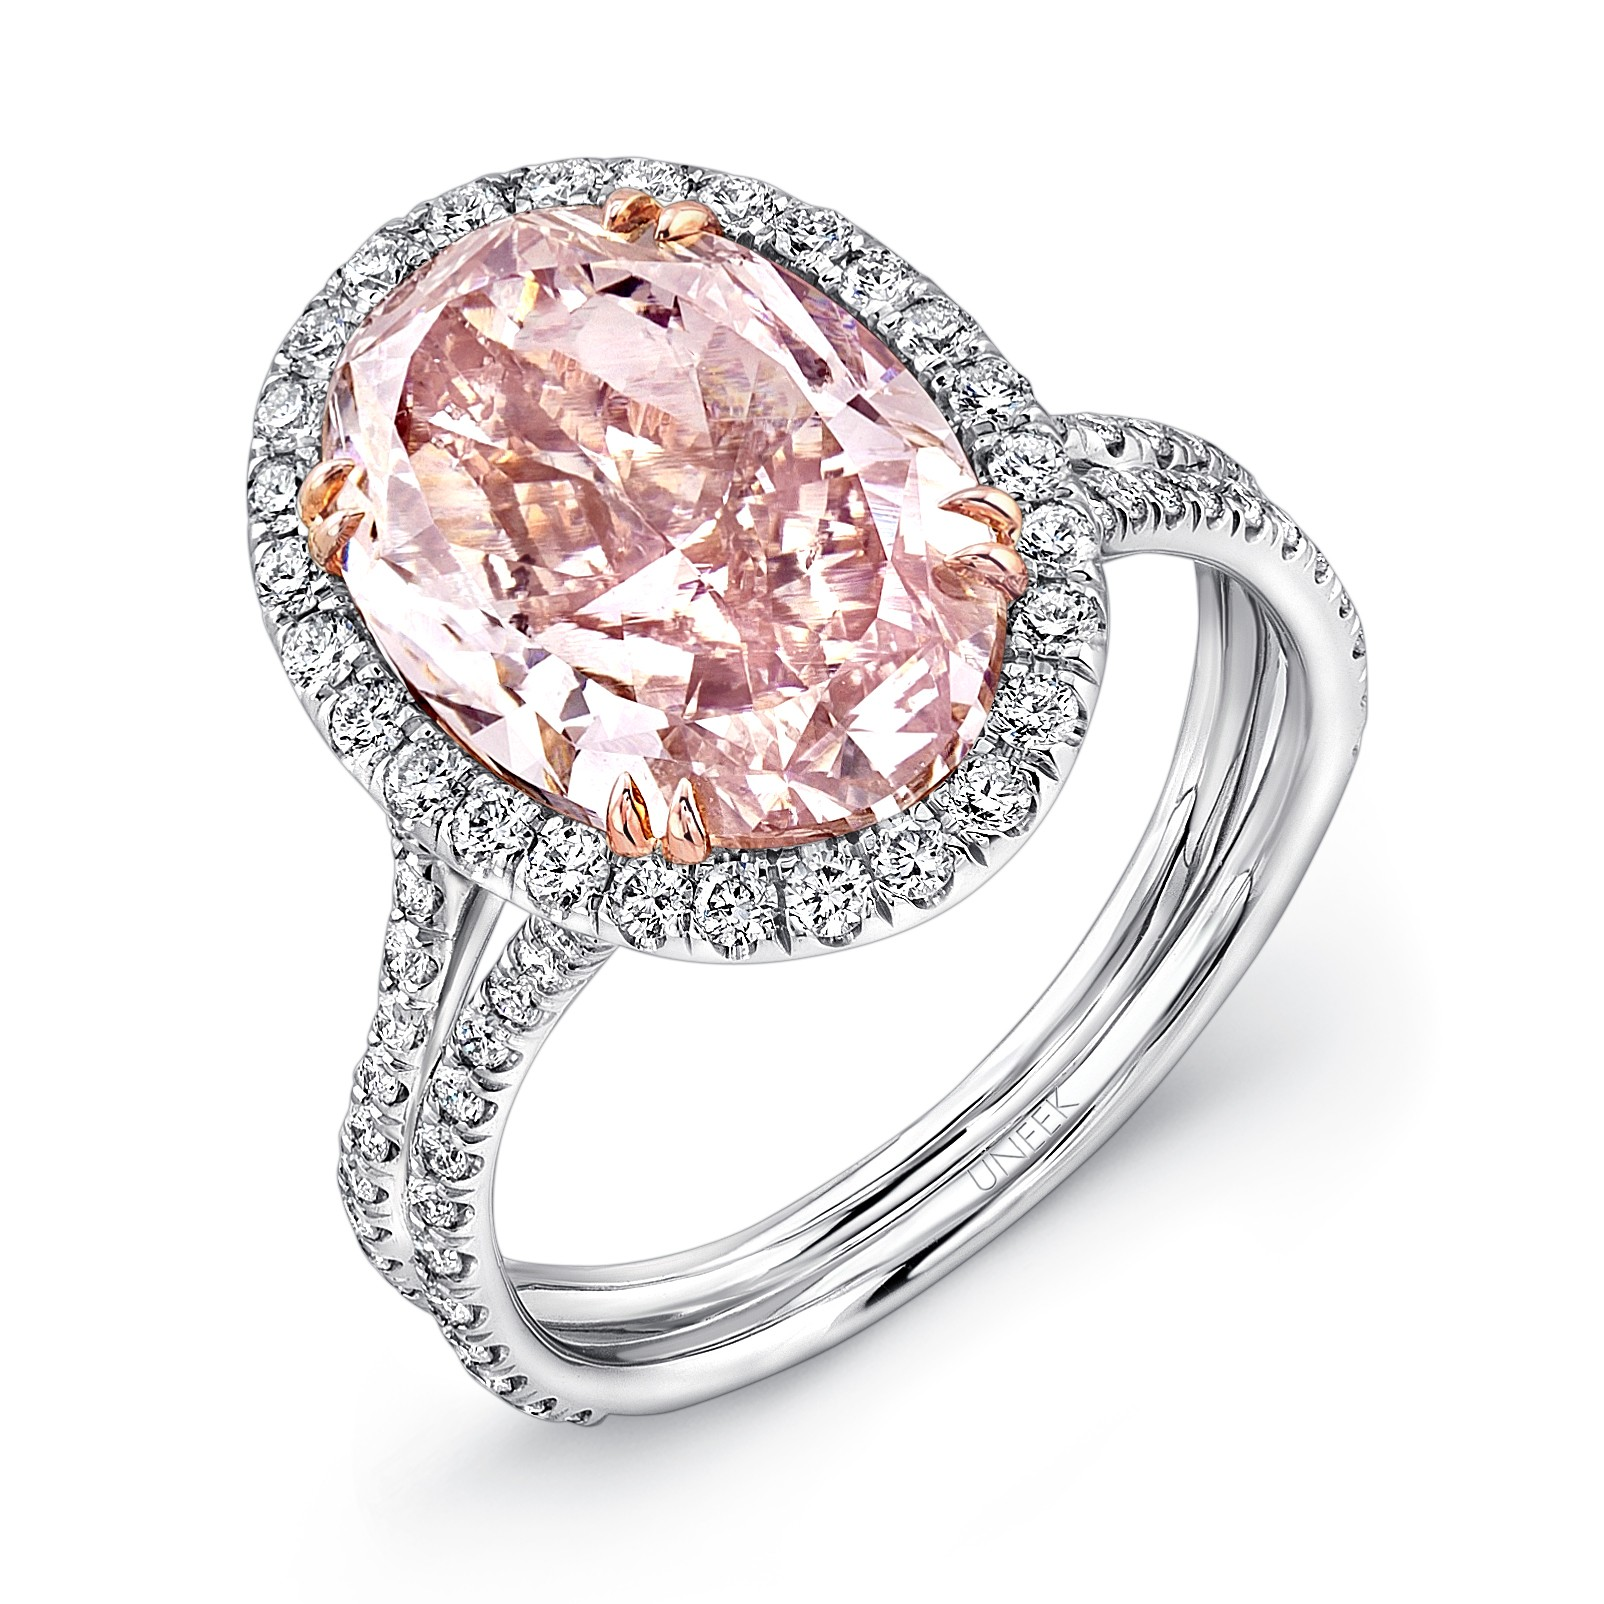 uneek oval fancy brown pink diamond halo engagement ring with silhouette double shank in platinum and 18k rose gold - Pink Wedding Ring